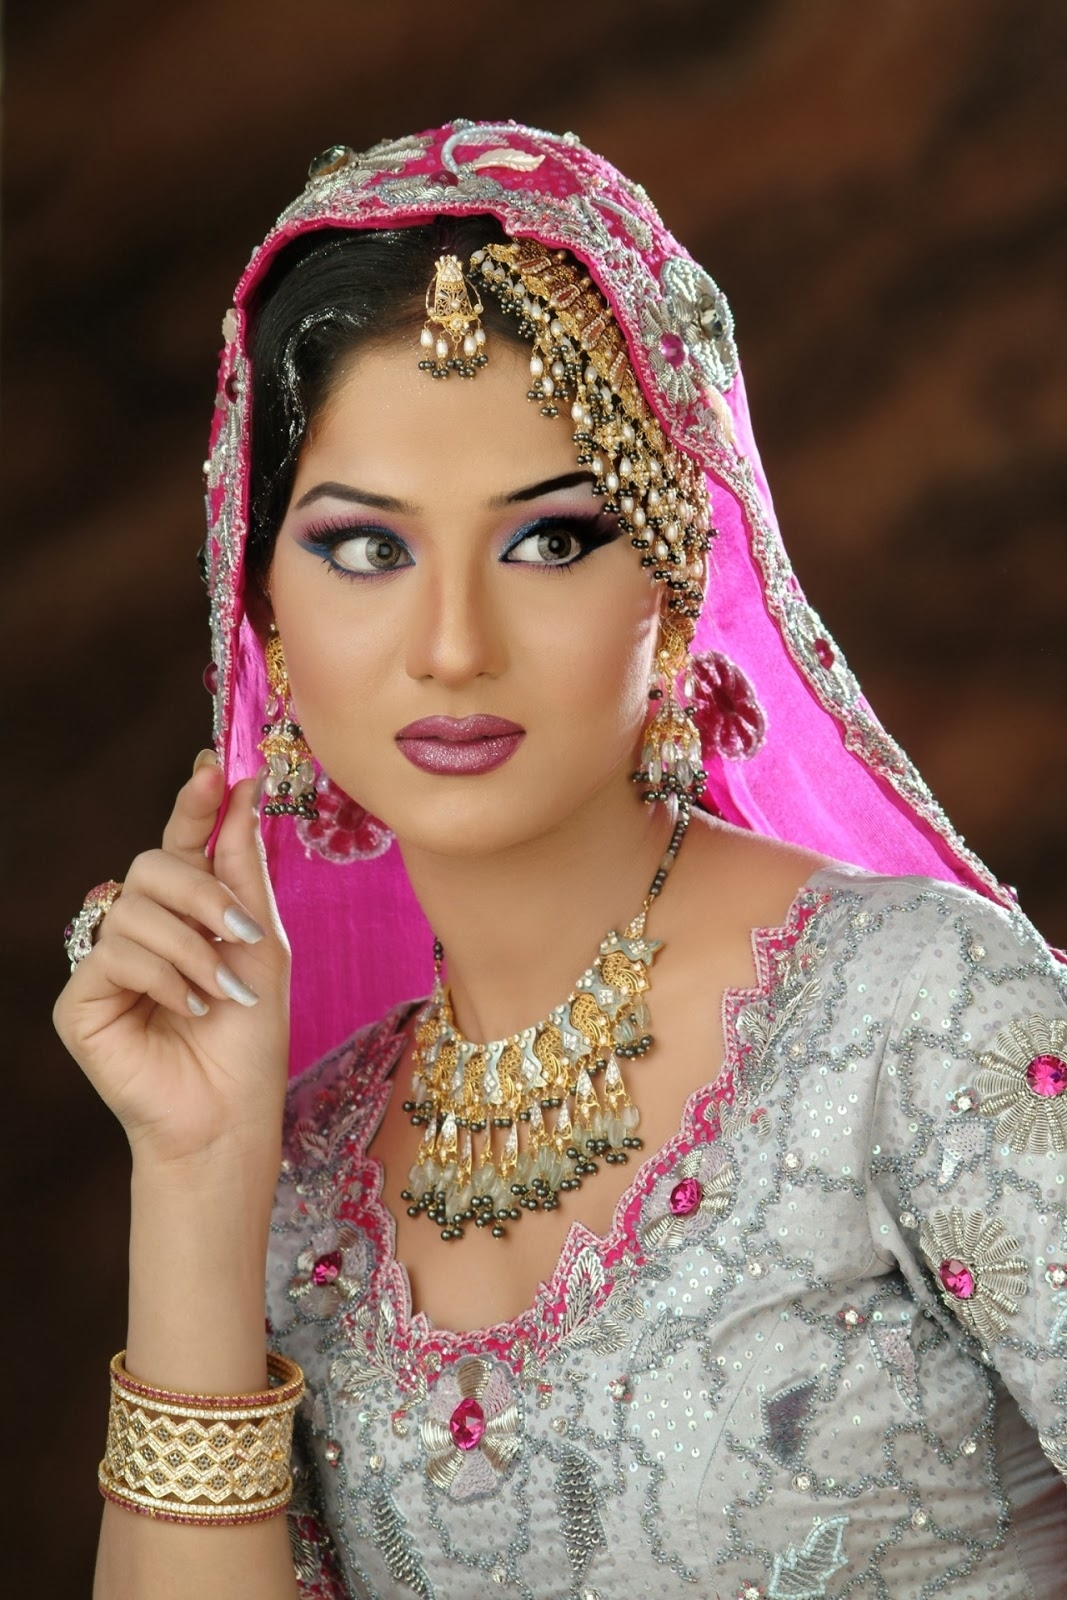 Pakistani And Indian Bridal Makeup For New Year From 2013 & 2014 throughout Bridal Makeup Pic 2013